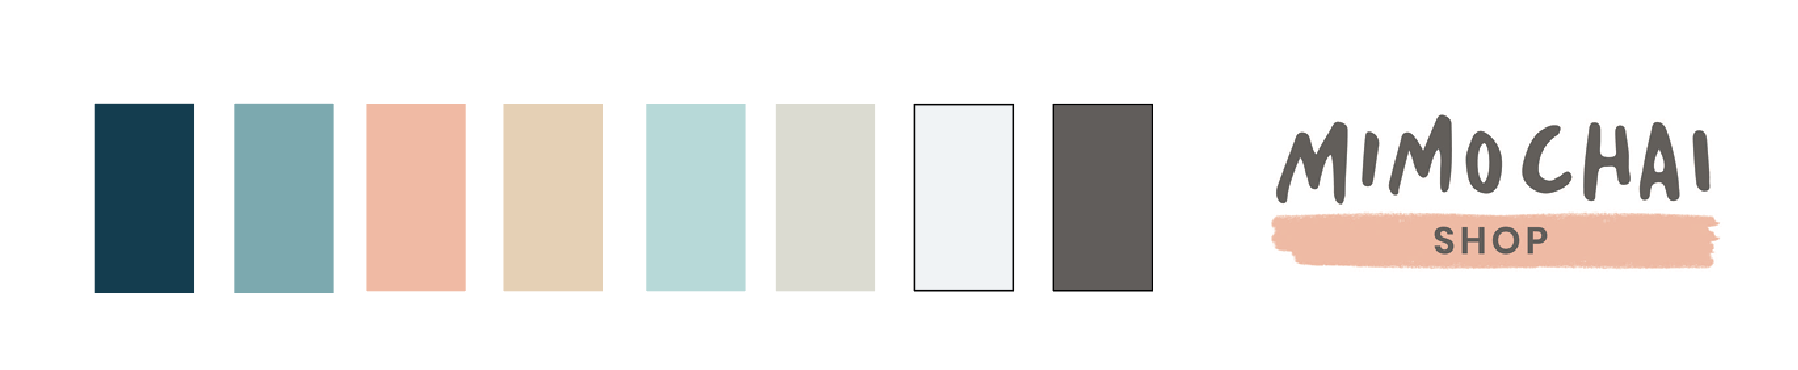 COLOR PALETTE AND MIMOCHAI SUB-BRAND LOGO/BORDER